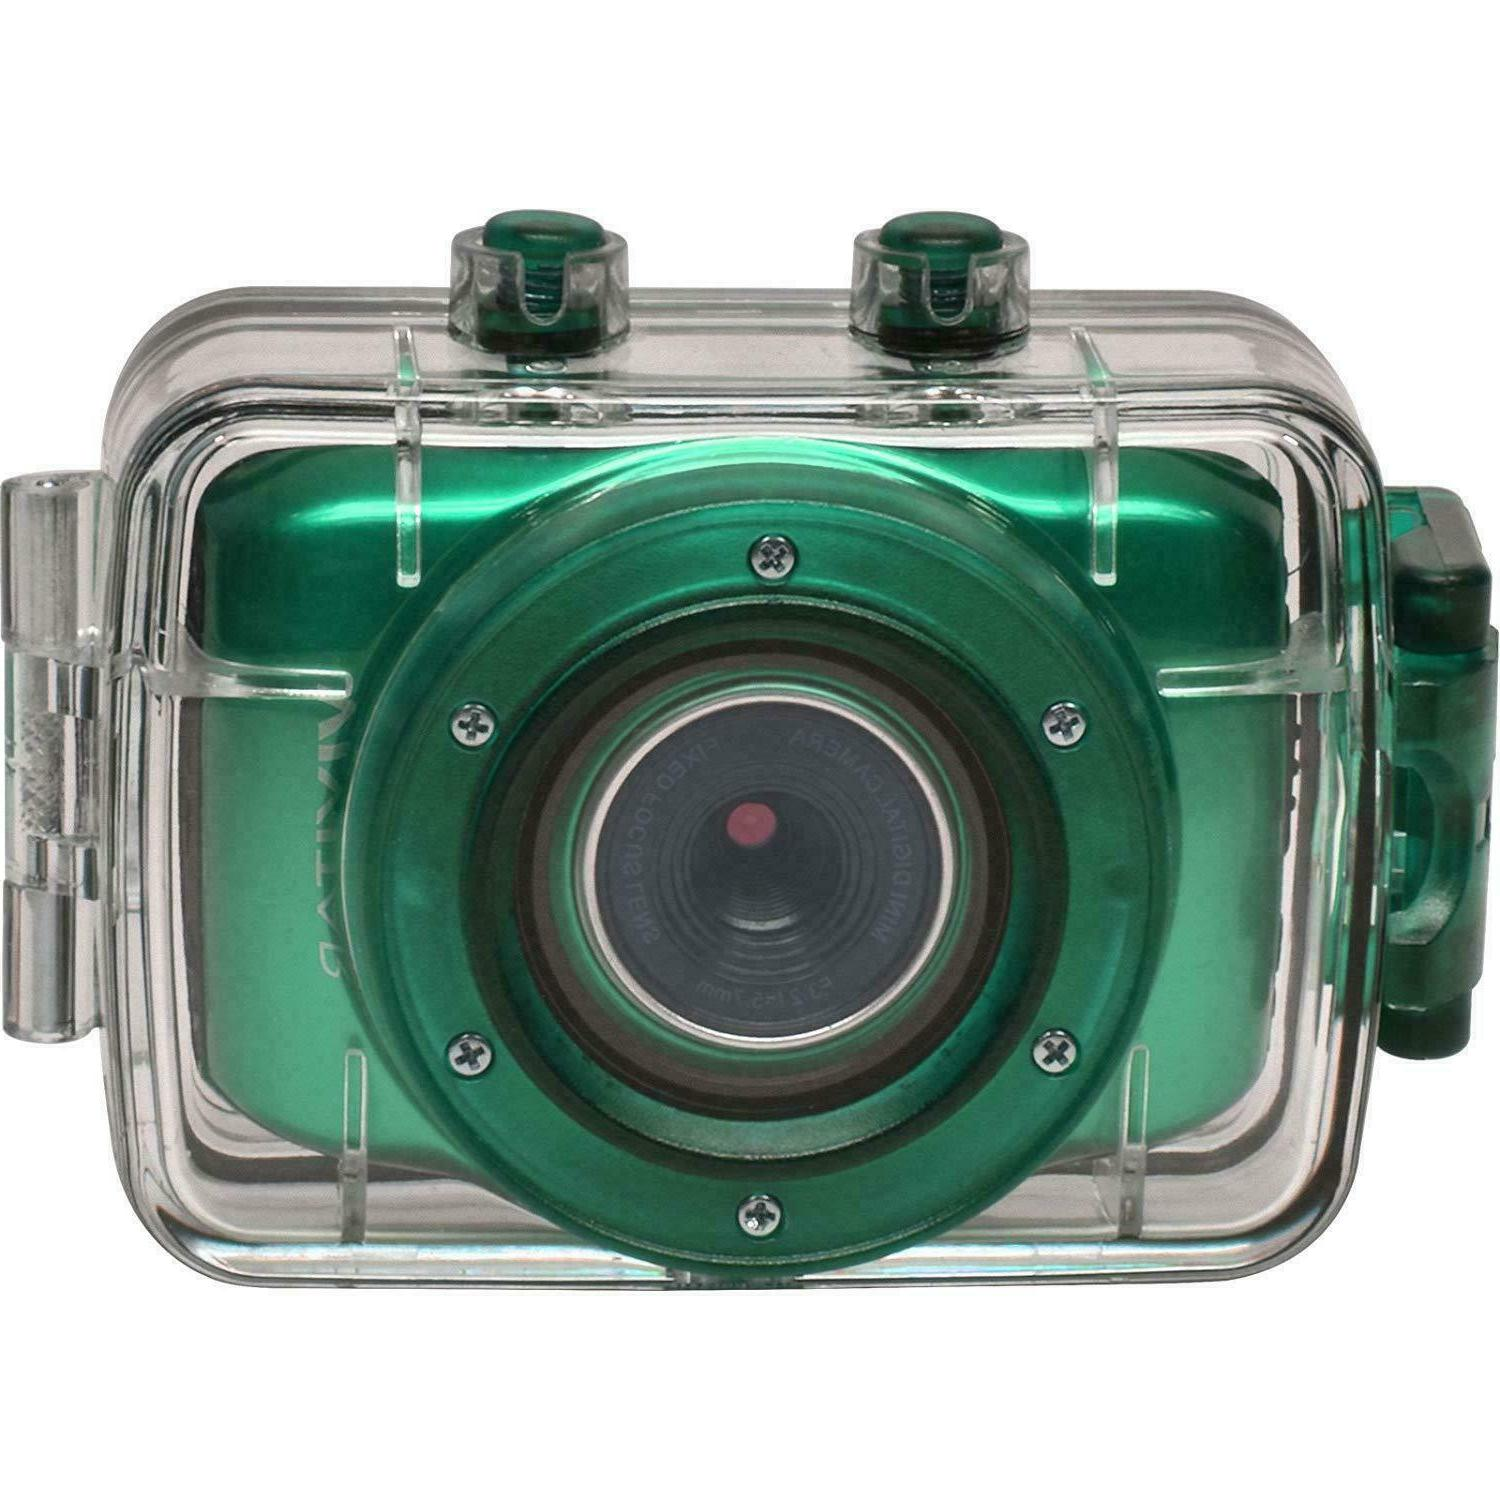 Vivitar High Definition Action Cam WaterProof Hd Video 720p